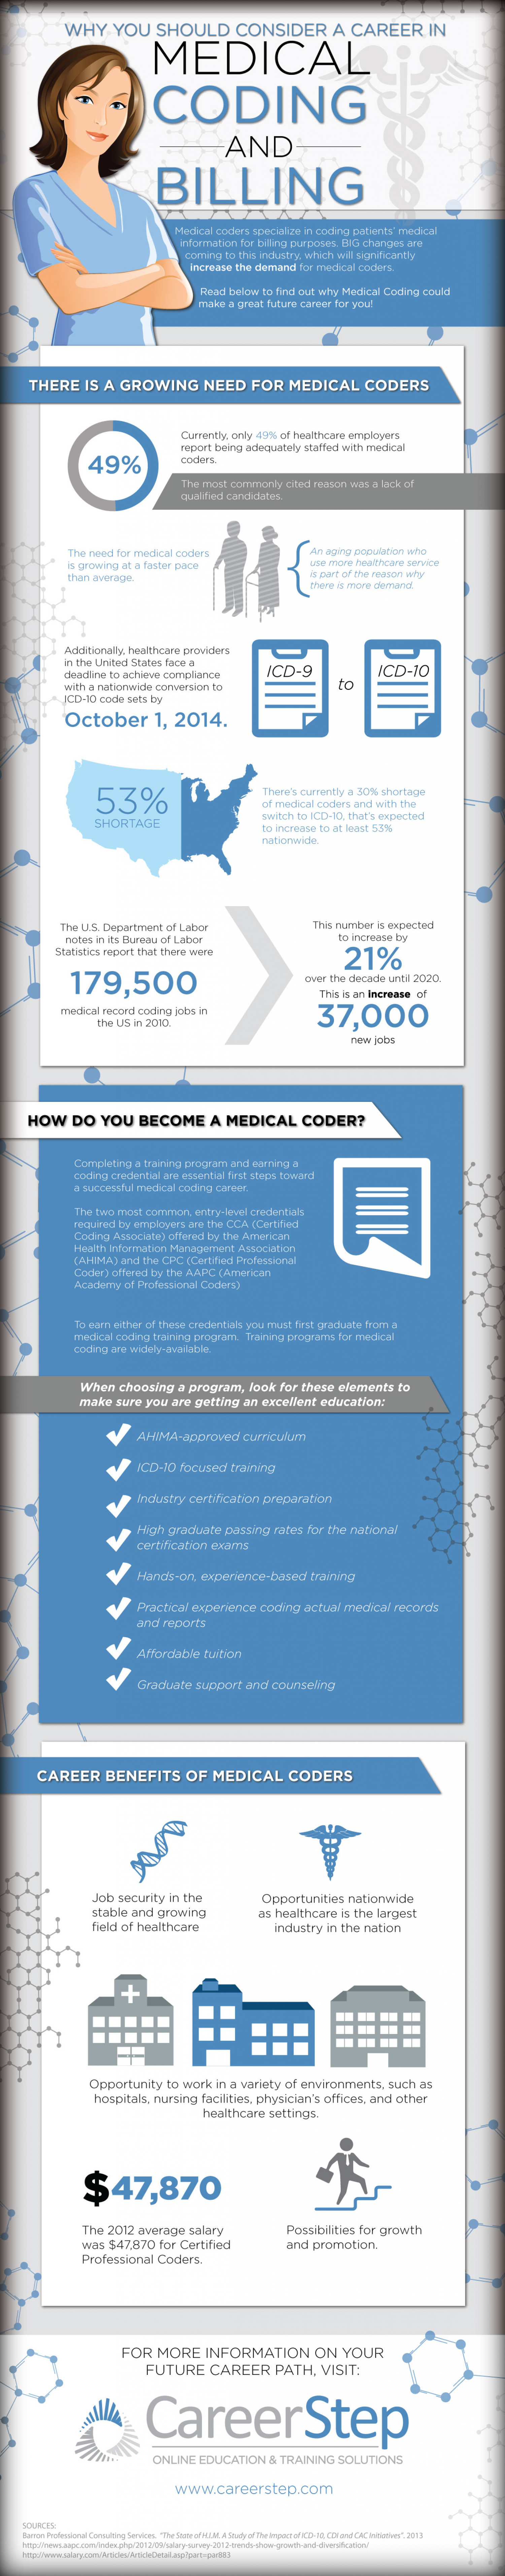 Why you should consider a career in medical coding & billing Infographic